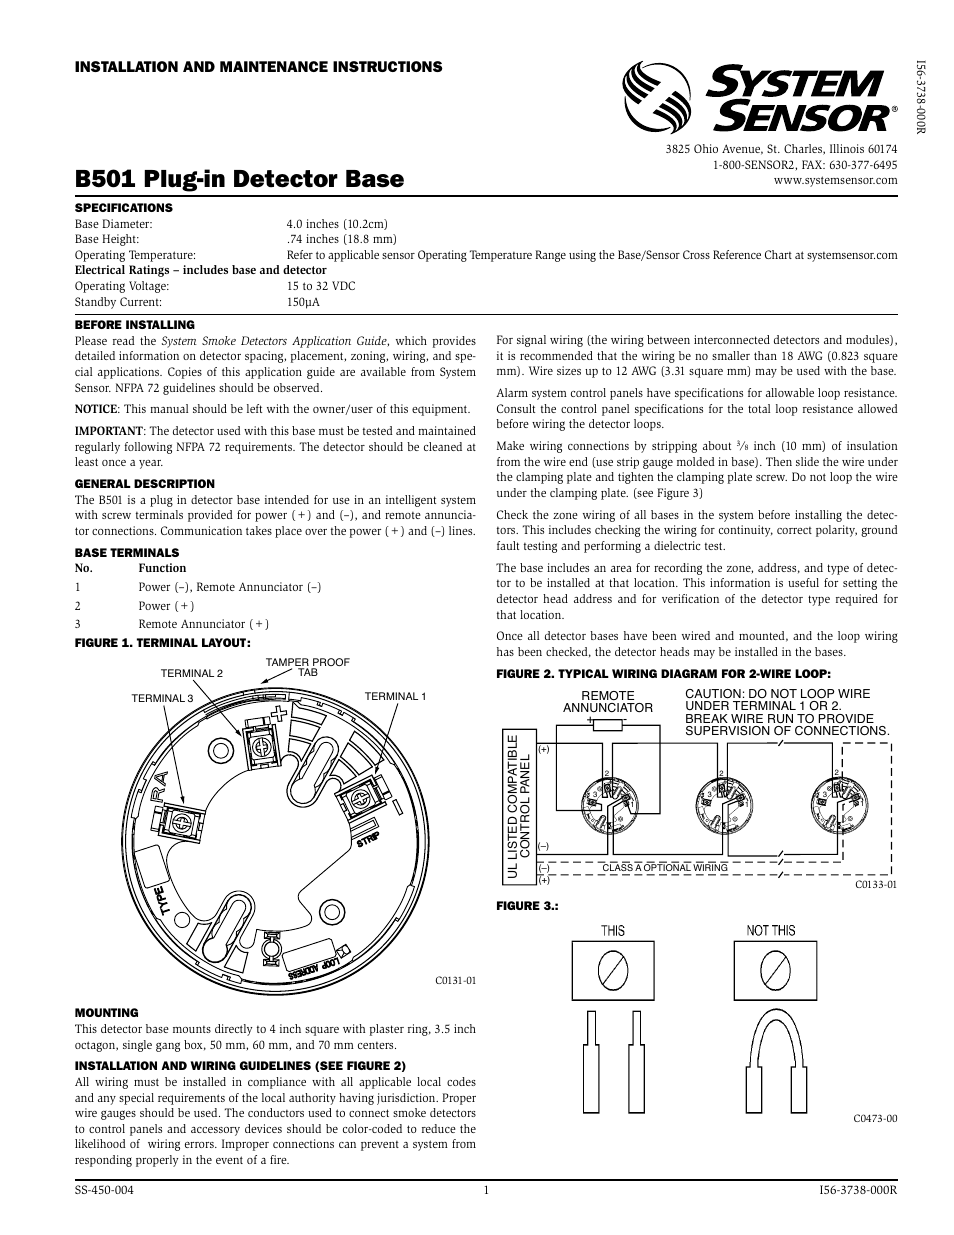 System Sensor B501 User Manual   2 pages